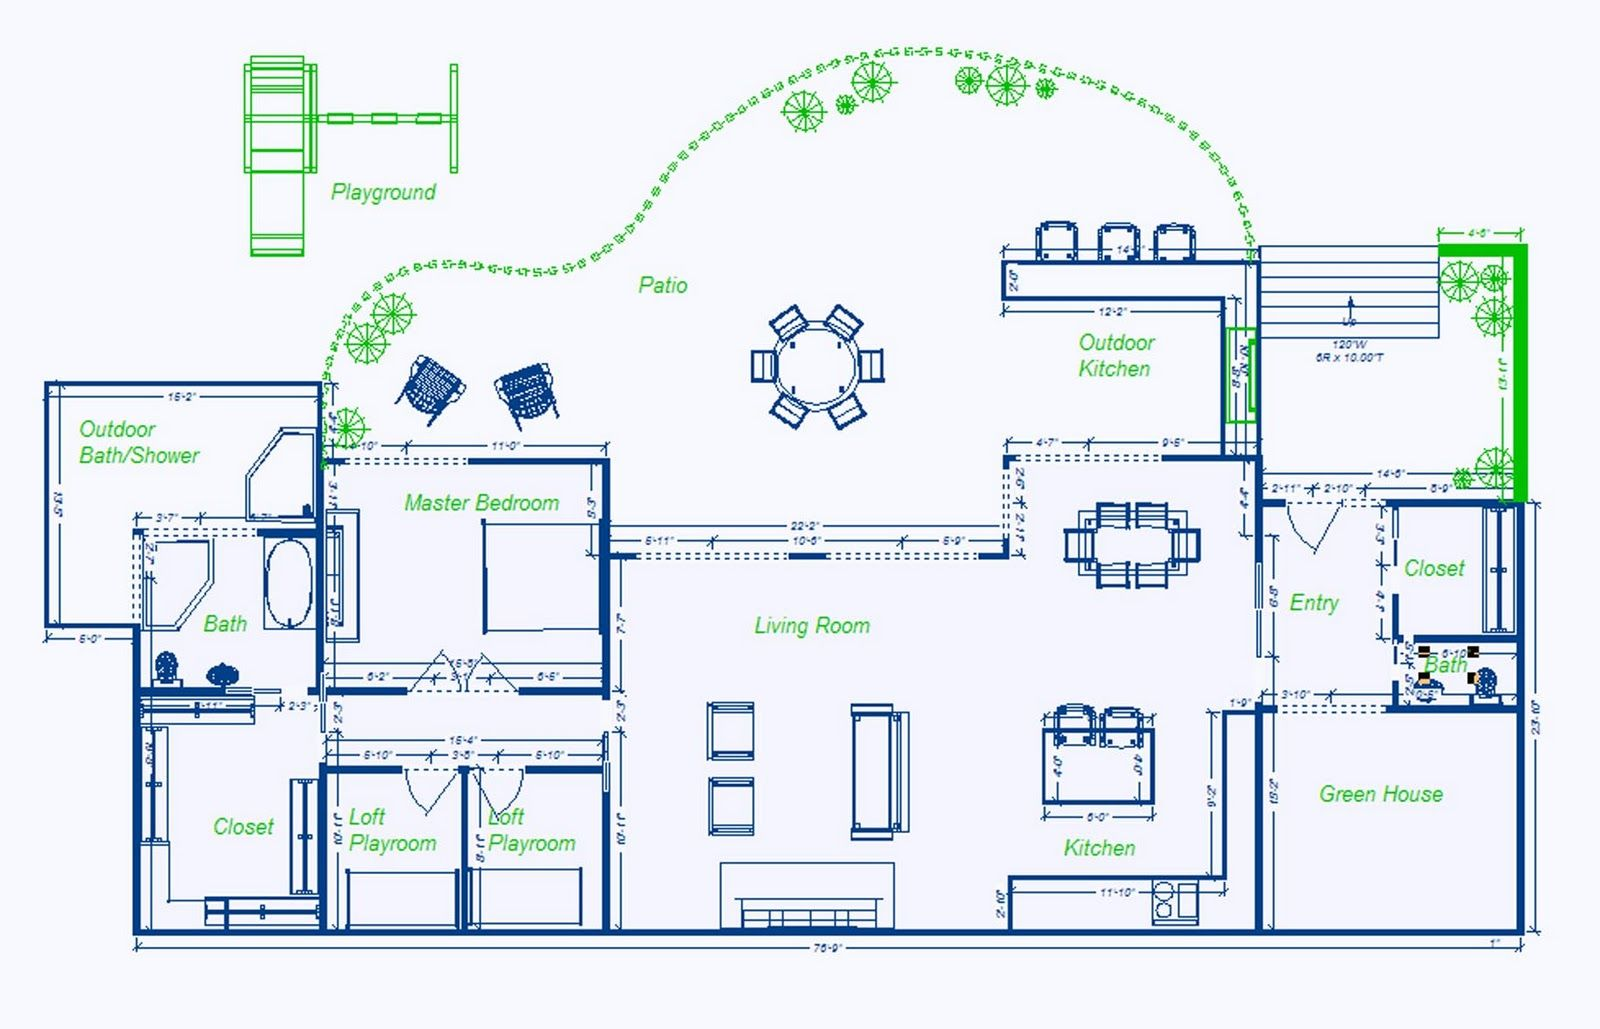 Pin By Rue Flaherty On Floor Plans Underground House Plans Beach House Plans Underground Homes